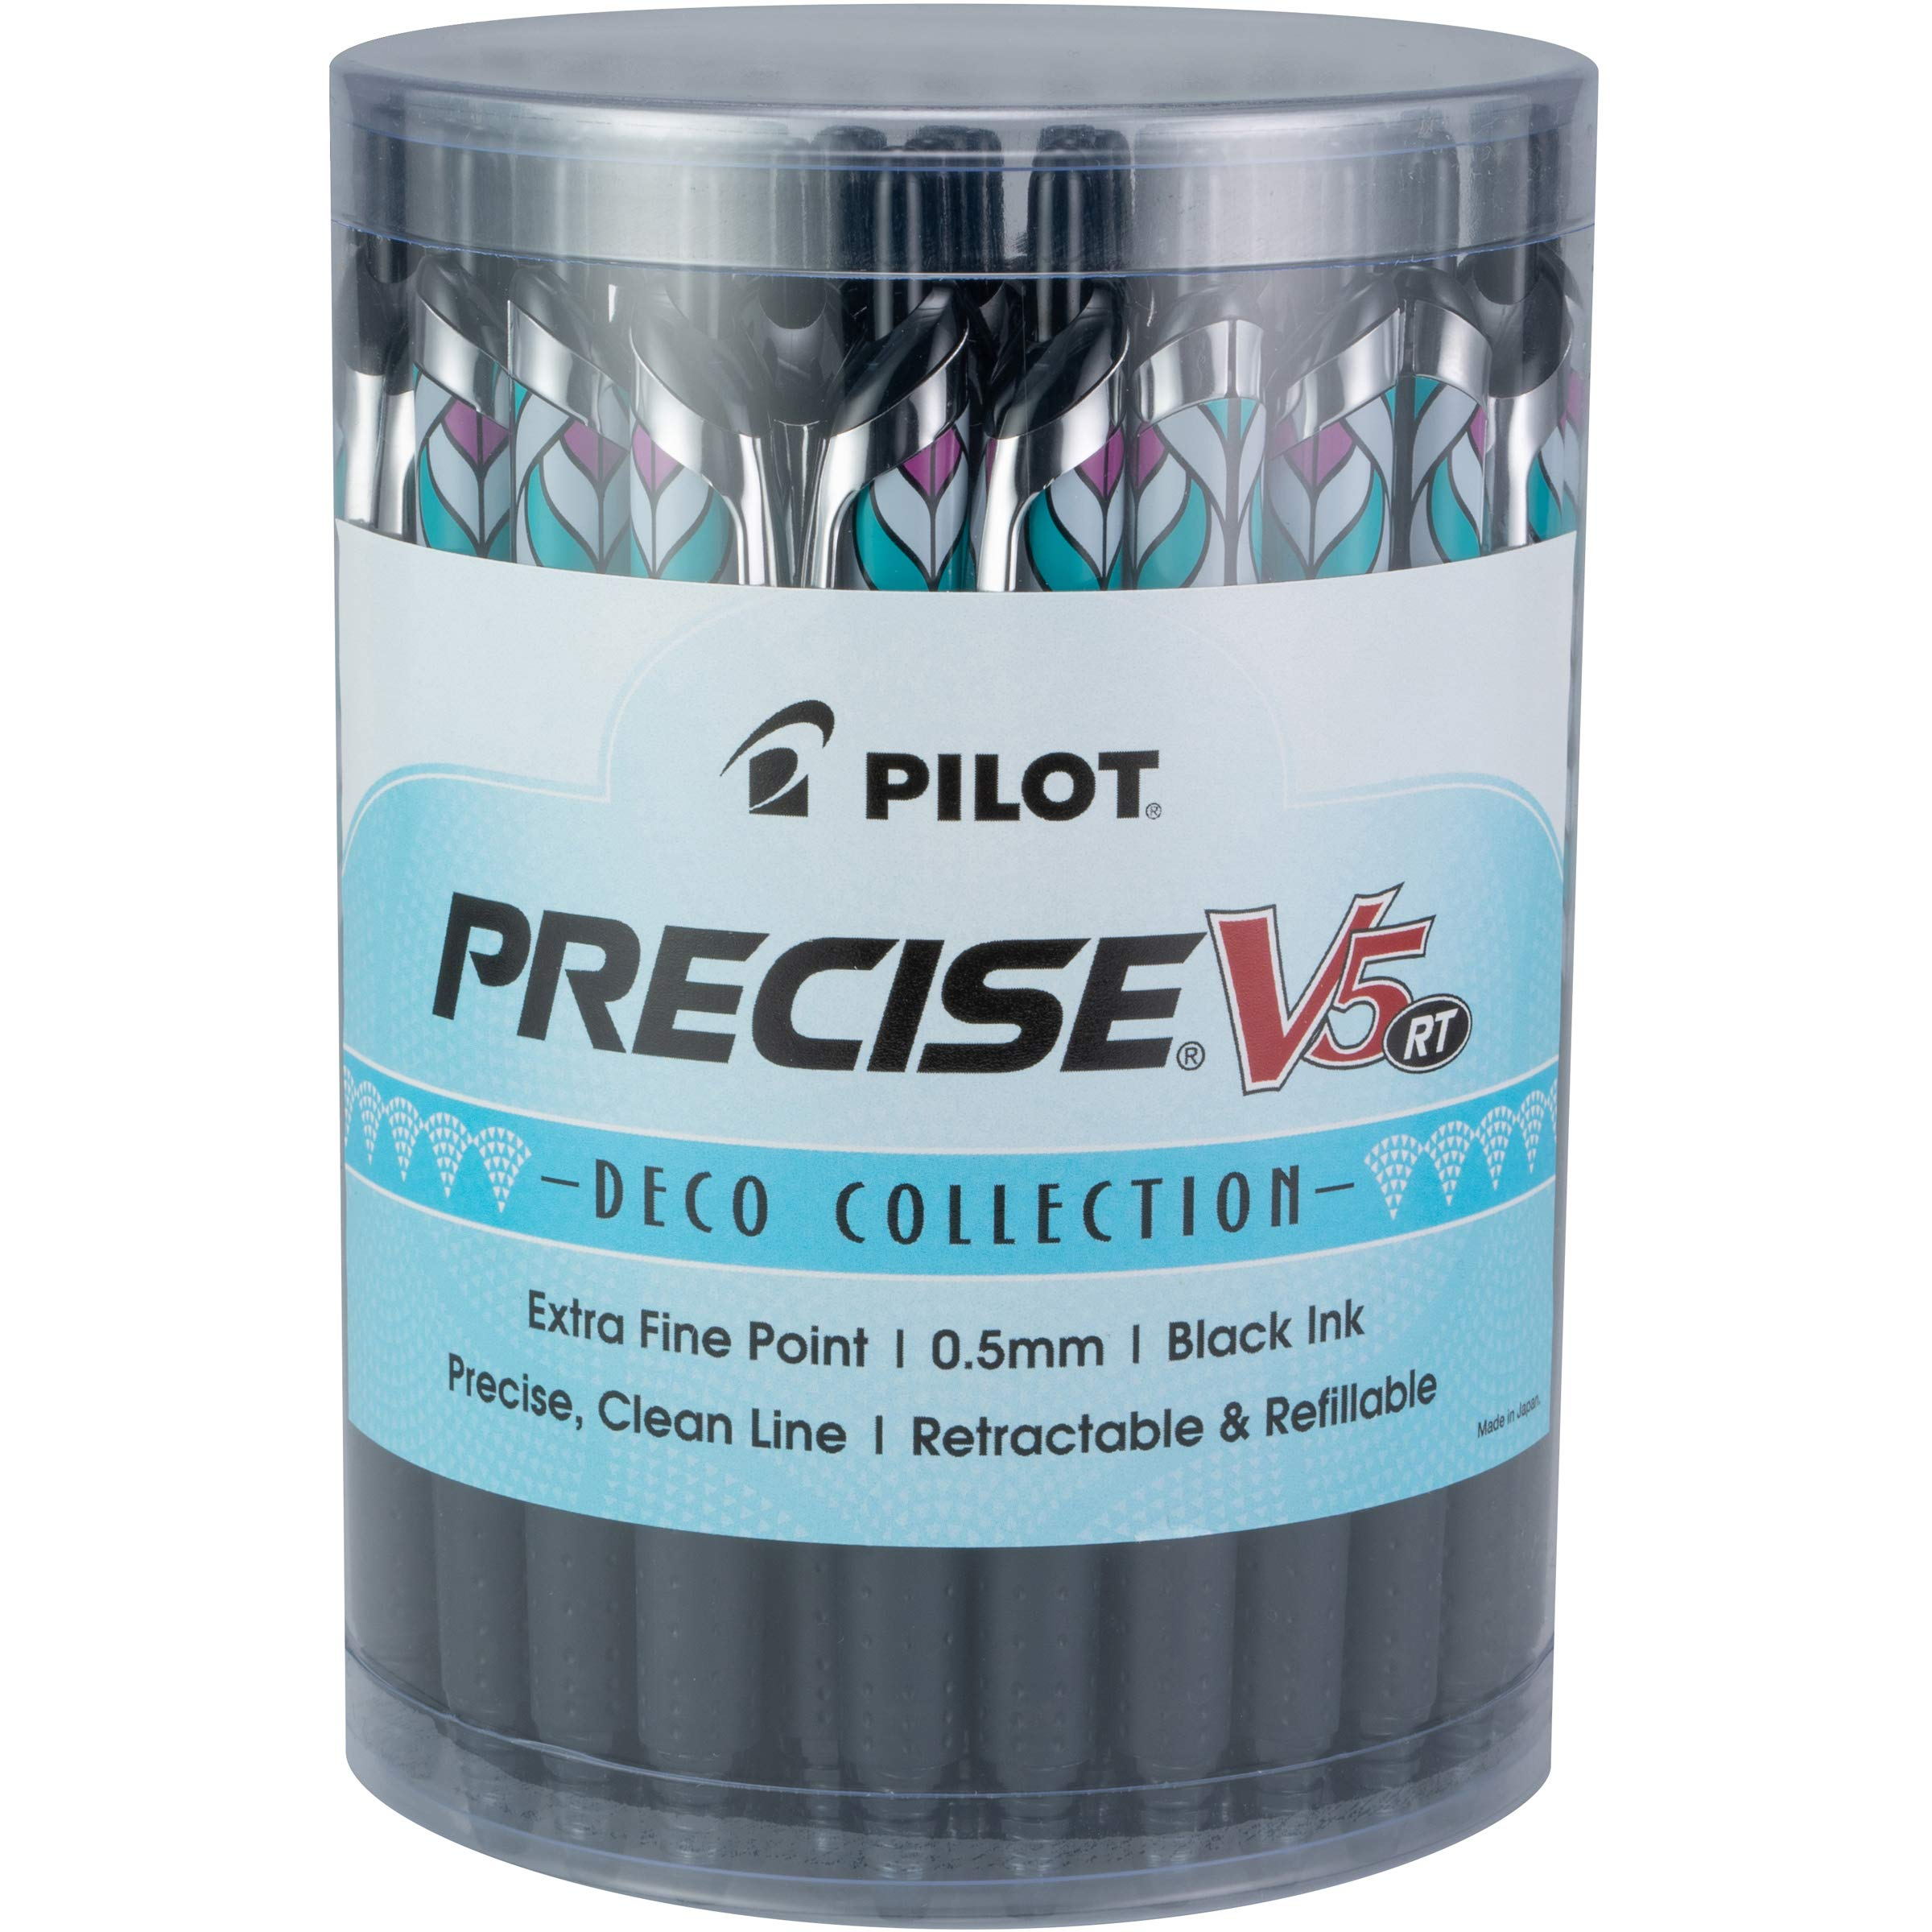 PILOT Precise V5 RT Refillable & Retractable Liquid Ink Rolling Ball Pens, Extra Fine Point, Black Ink, Tub of 48 (8034) by Pilot